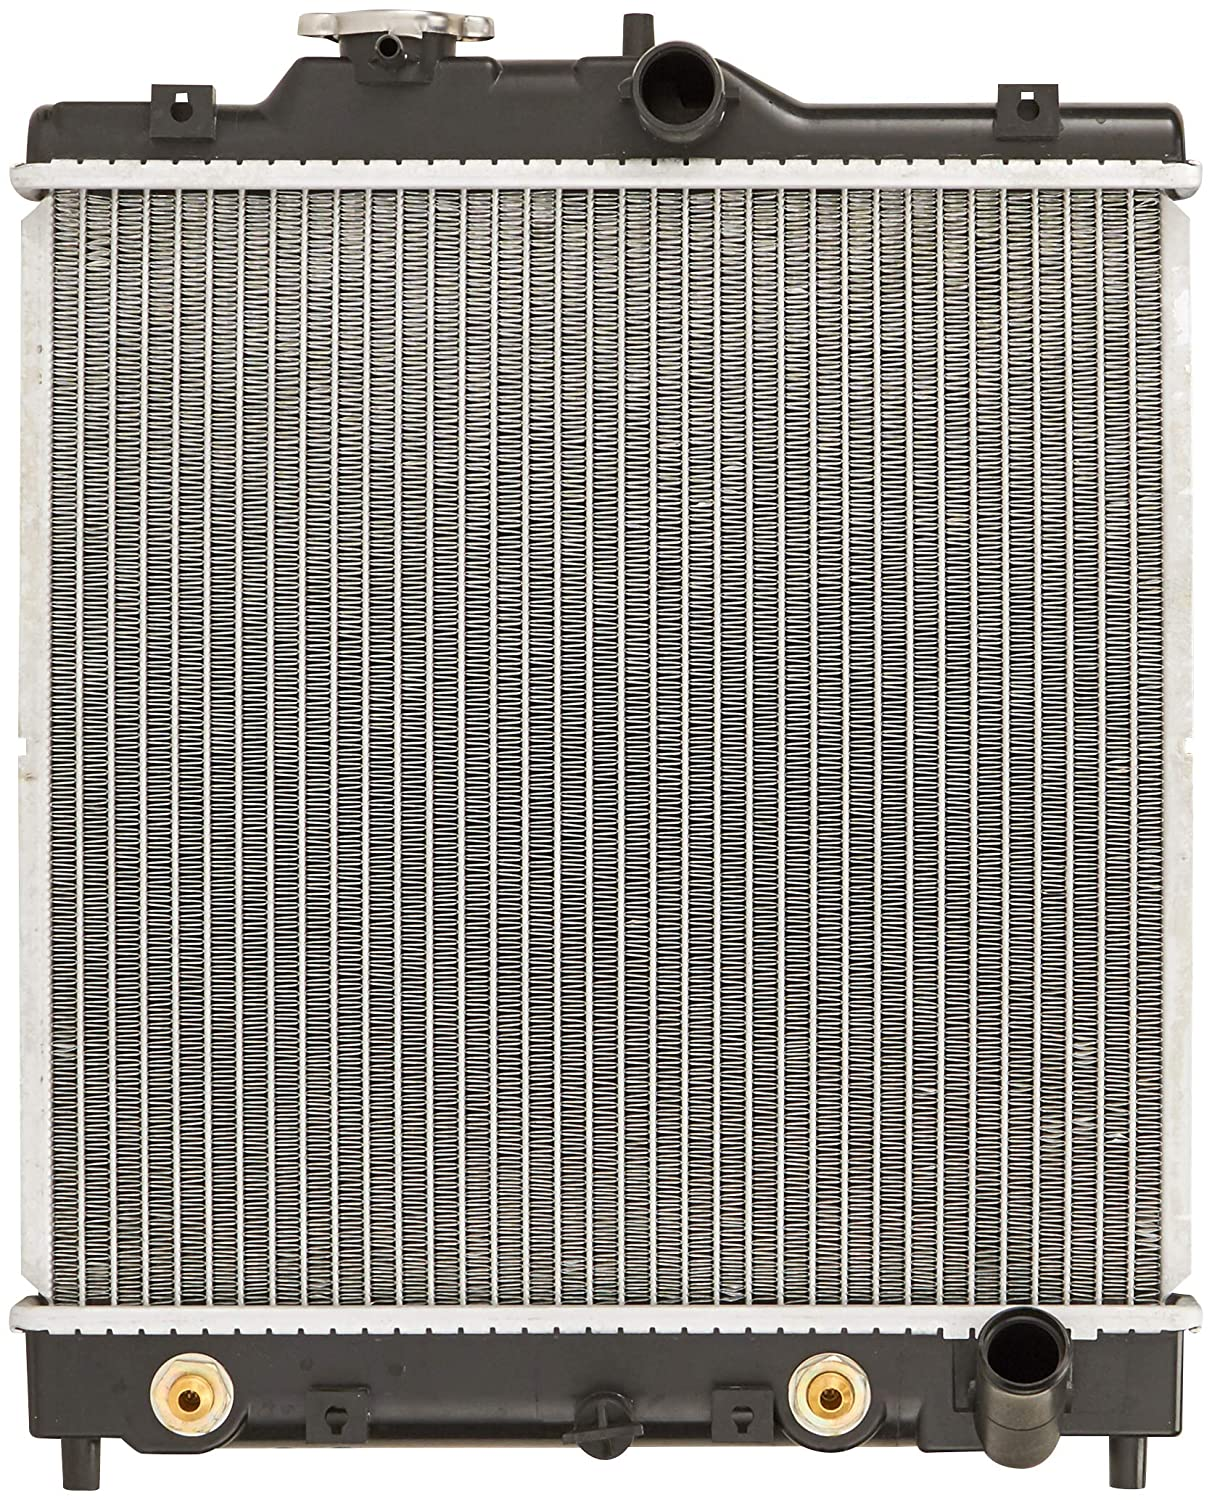 Spectra Premium CU1290 Complete Radiator for Honda Civic